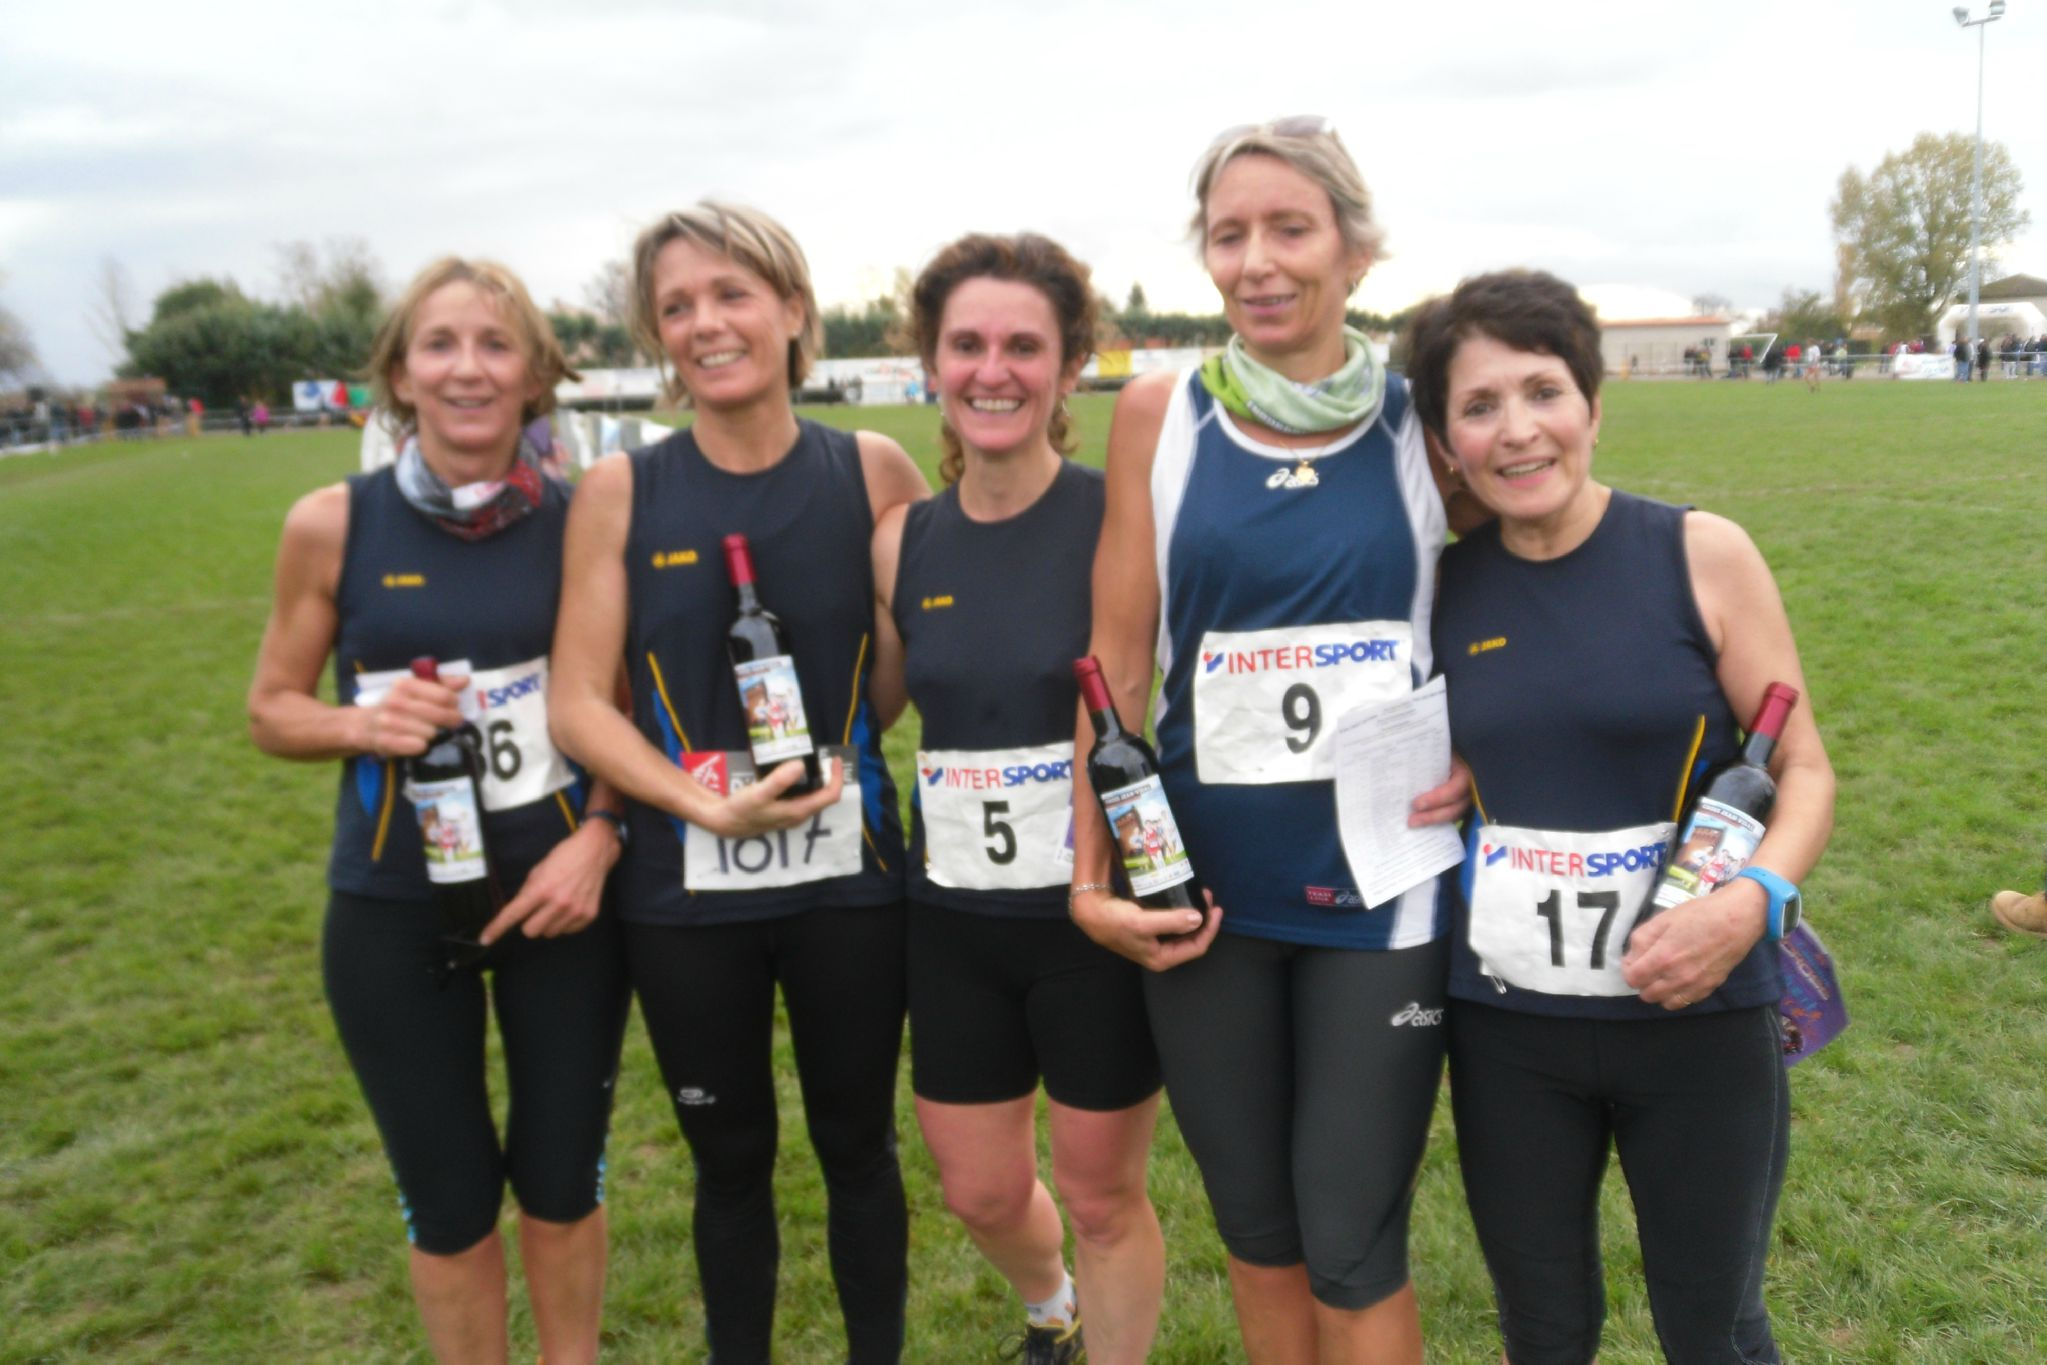 CROSS COUNTRY LESCURE (81) 11